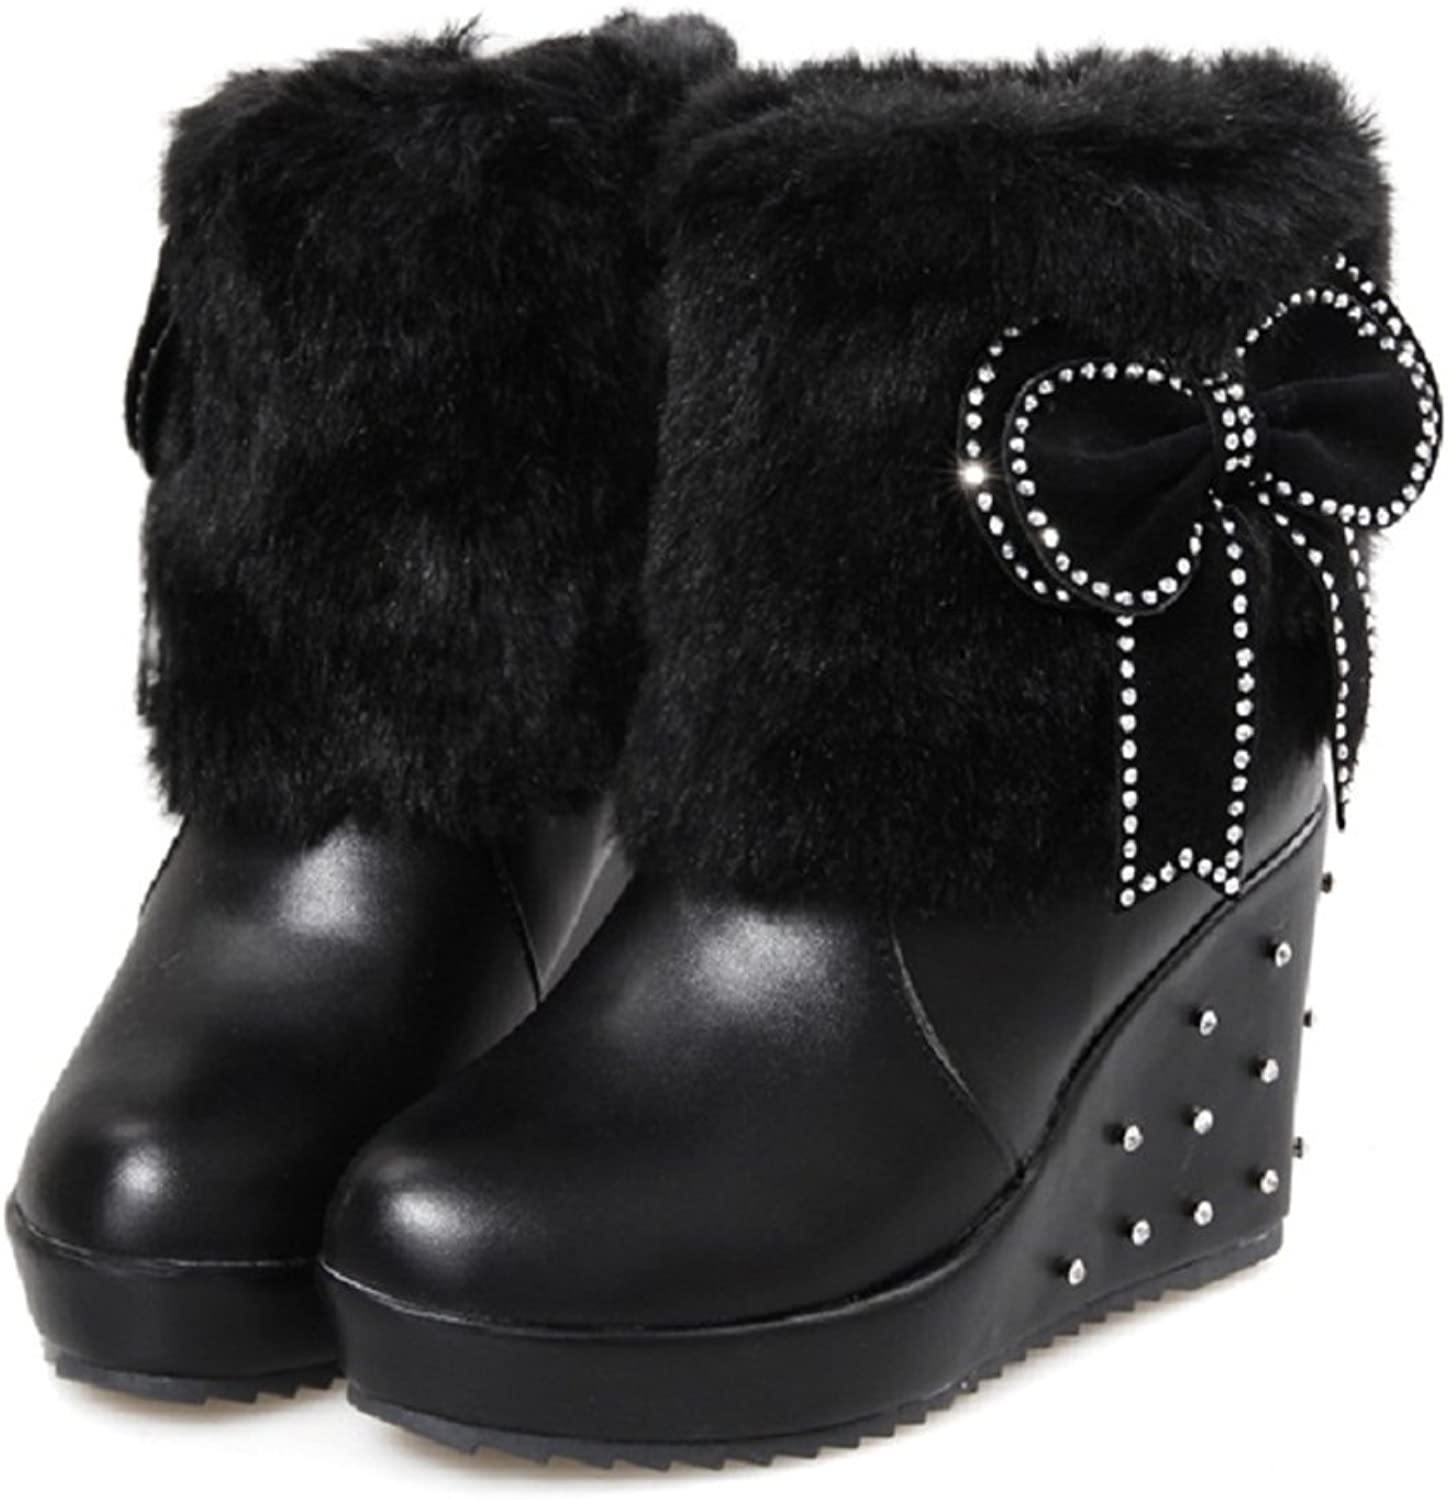 Caddy Wolfclaw Women Cute Bowknot Rhinestone Winter Fur Lined Wedge Platform Snow Boots Warm Fur Ankle High Boots